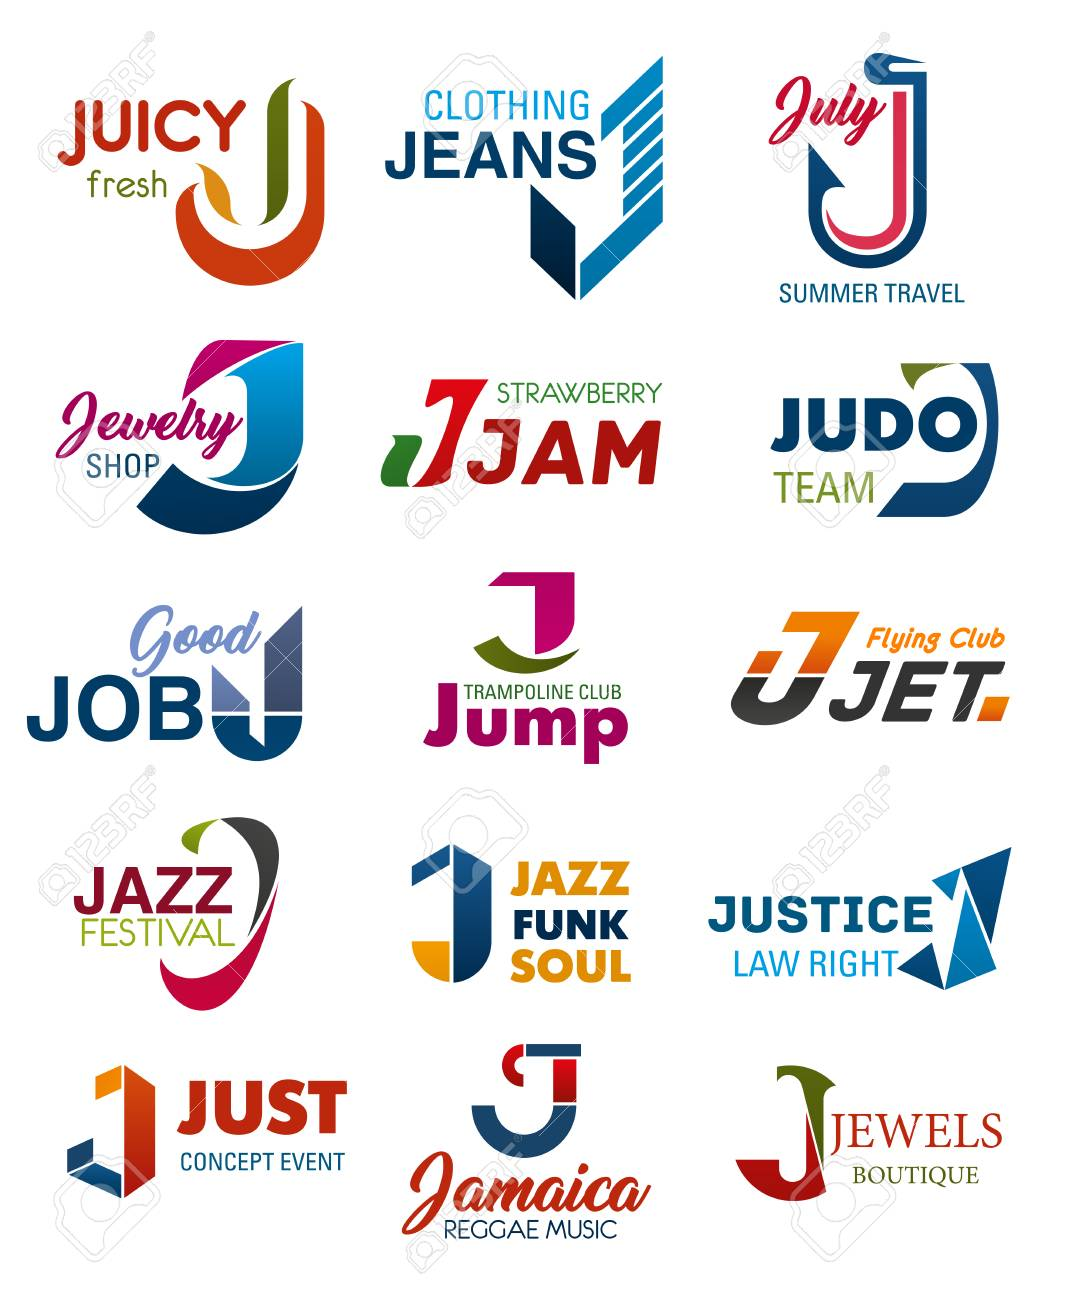 J letter business identity icons and symbols. Juicy and jeans, july and jewelry, jam and judo, job and jump, jet and jazz, justice and just, Jamaica and jewels signs - 108886100